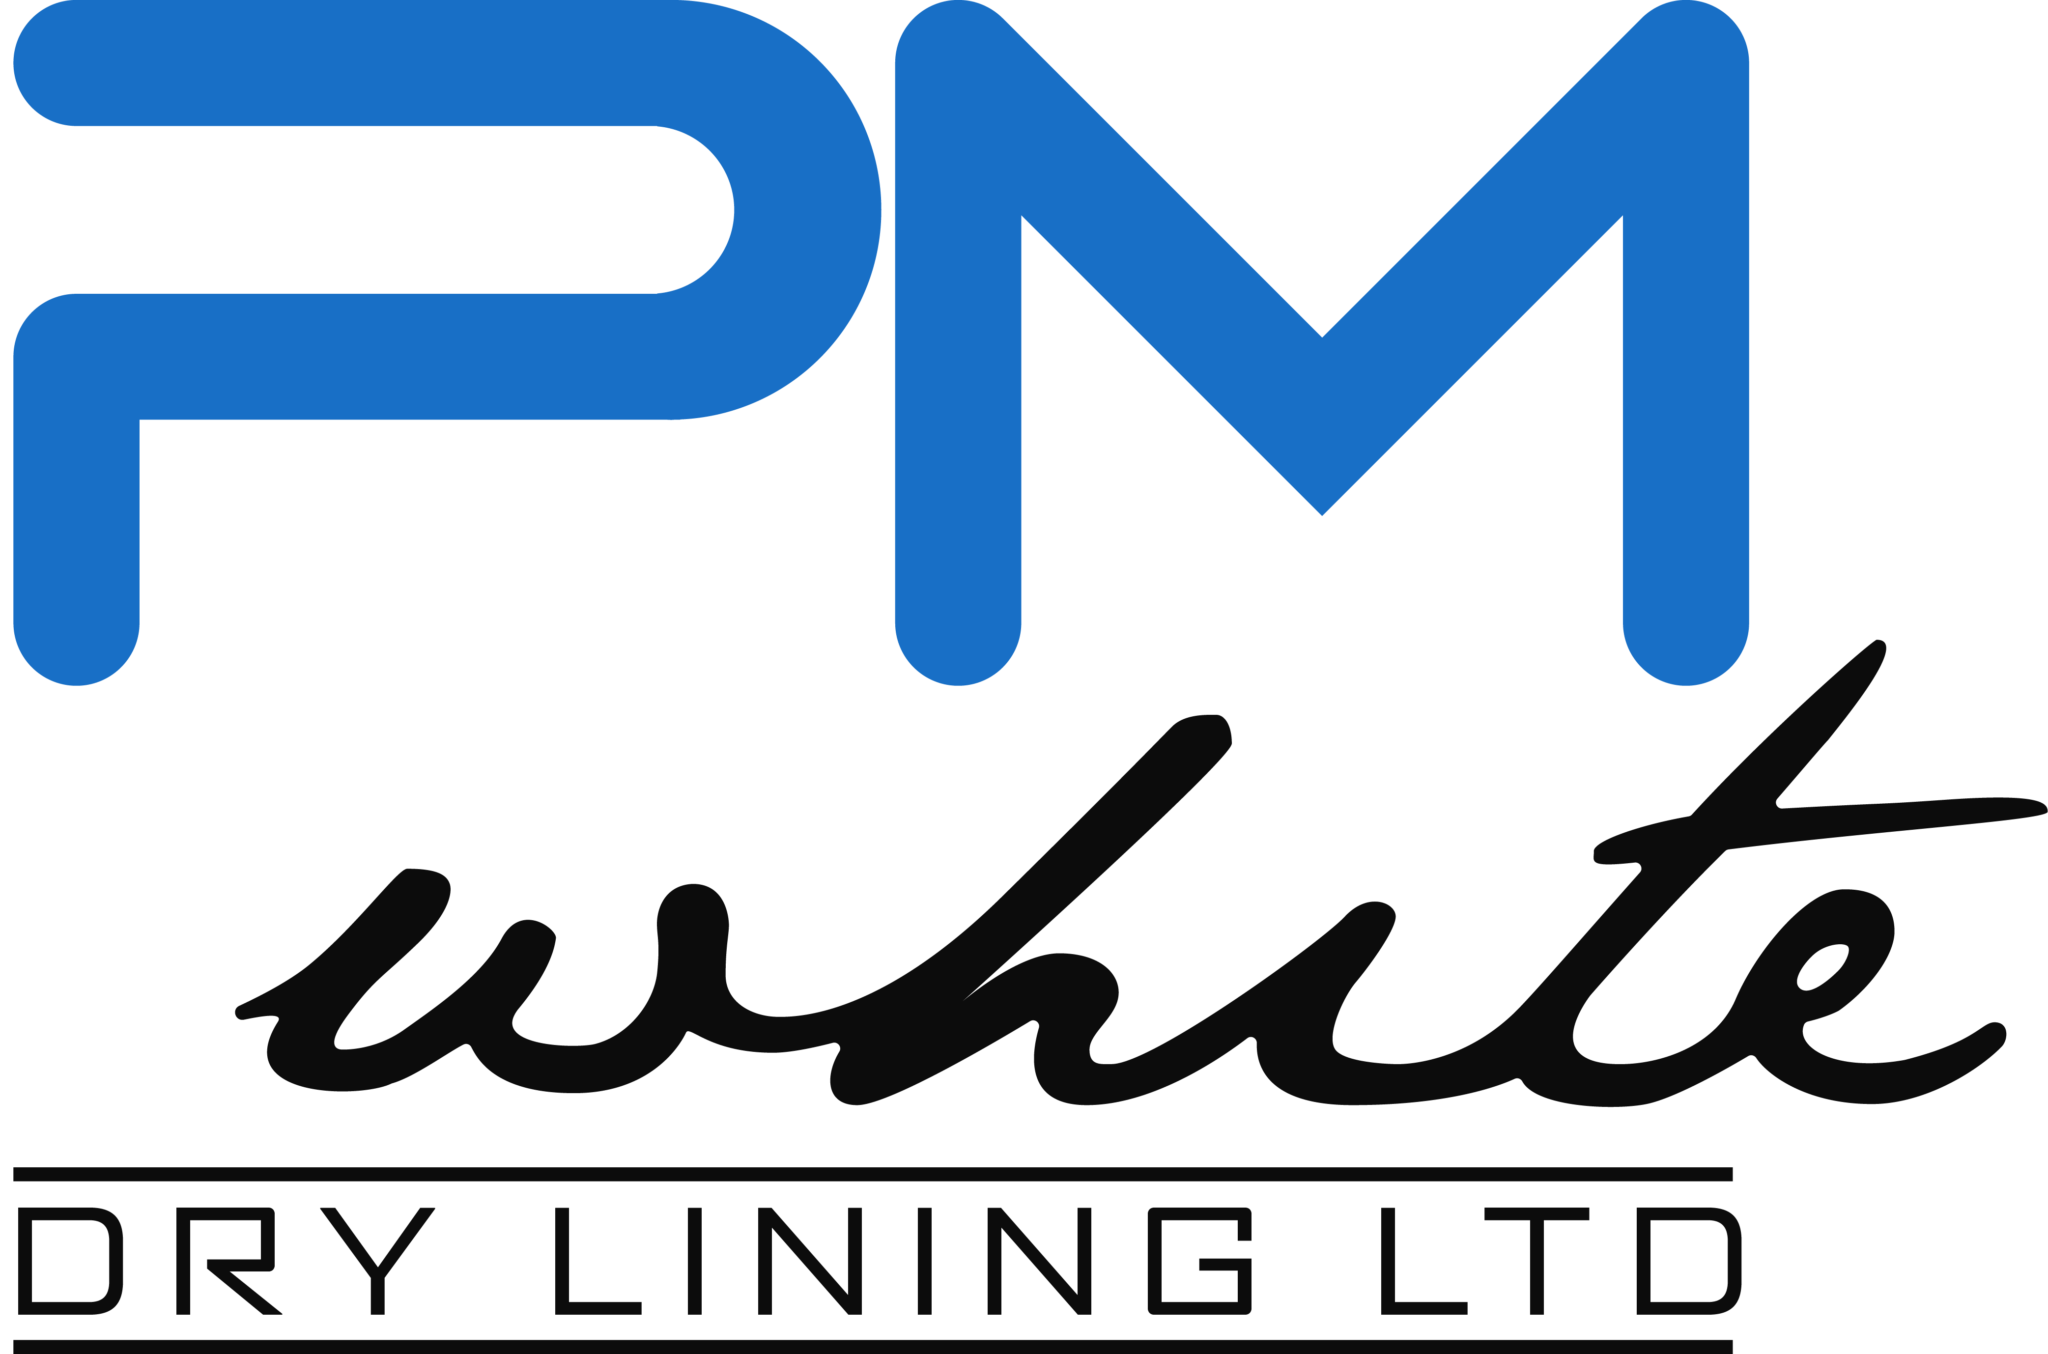 PM White Dry Lining